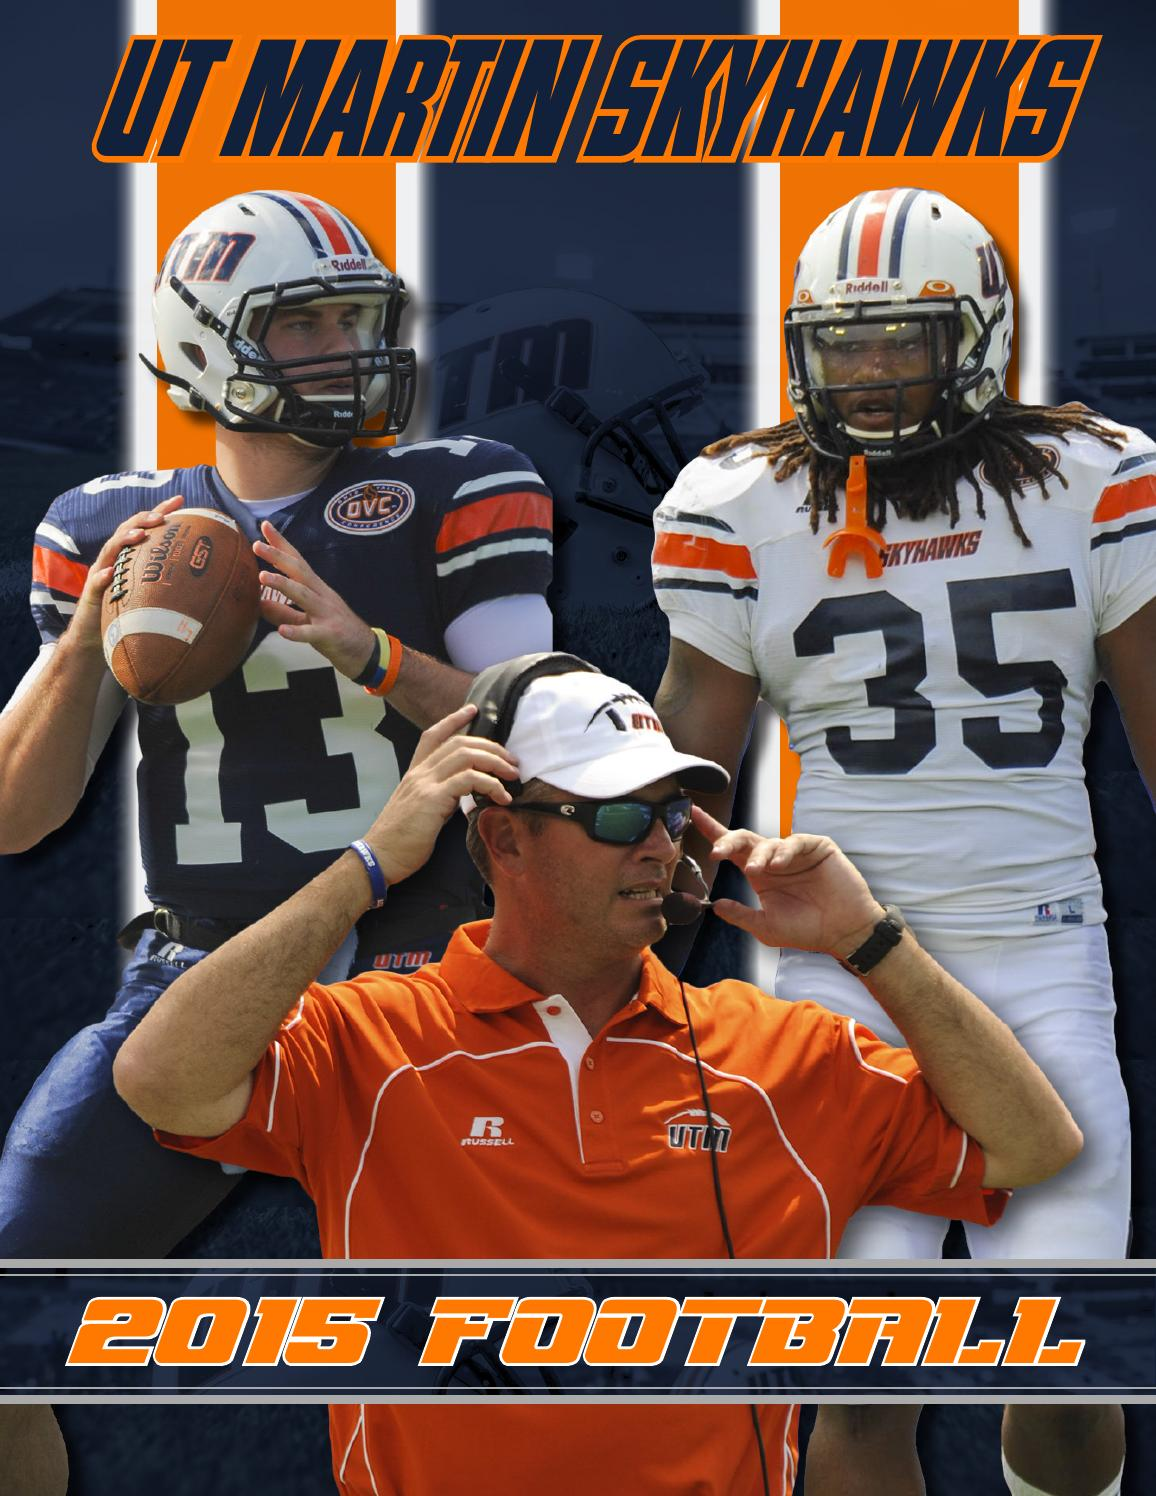 Media Skyhawk Issuu Athletics By - Football 2015 Martin Guide Ut